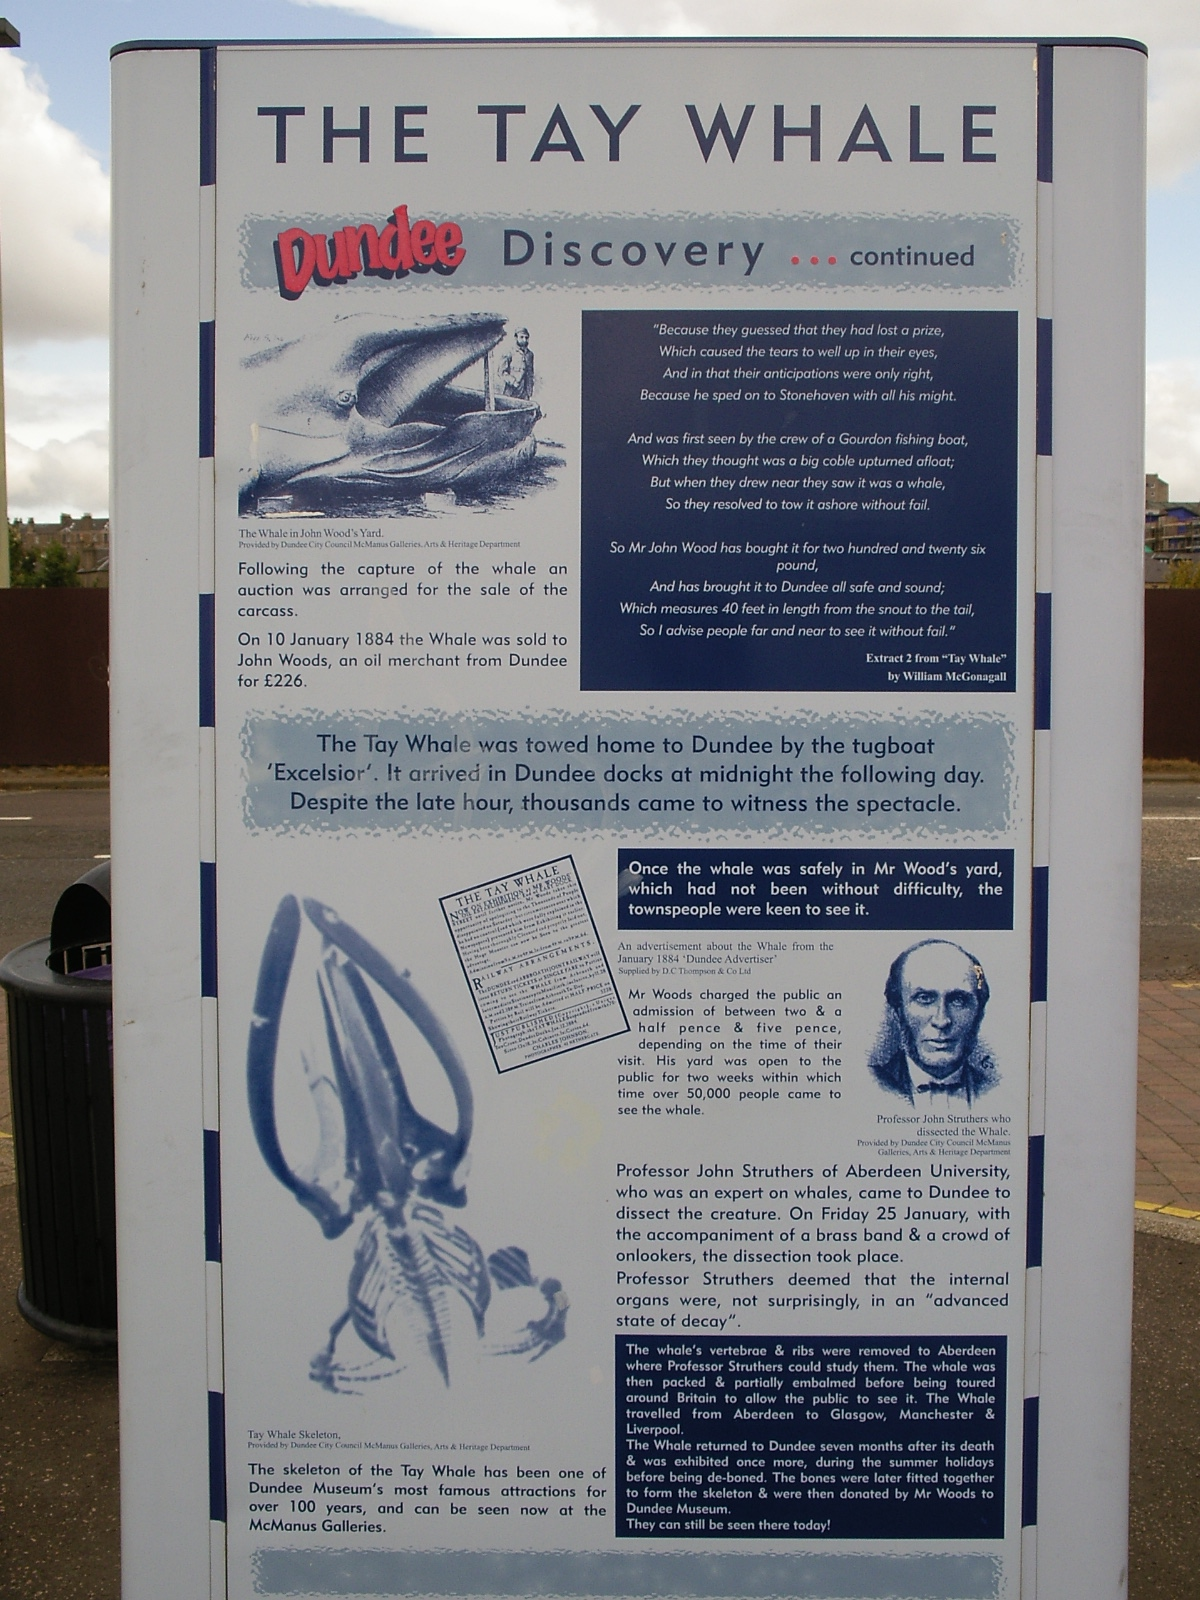 History of Dundee - the Tay Whale